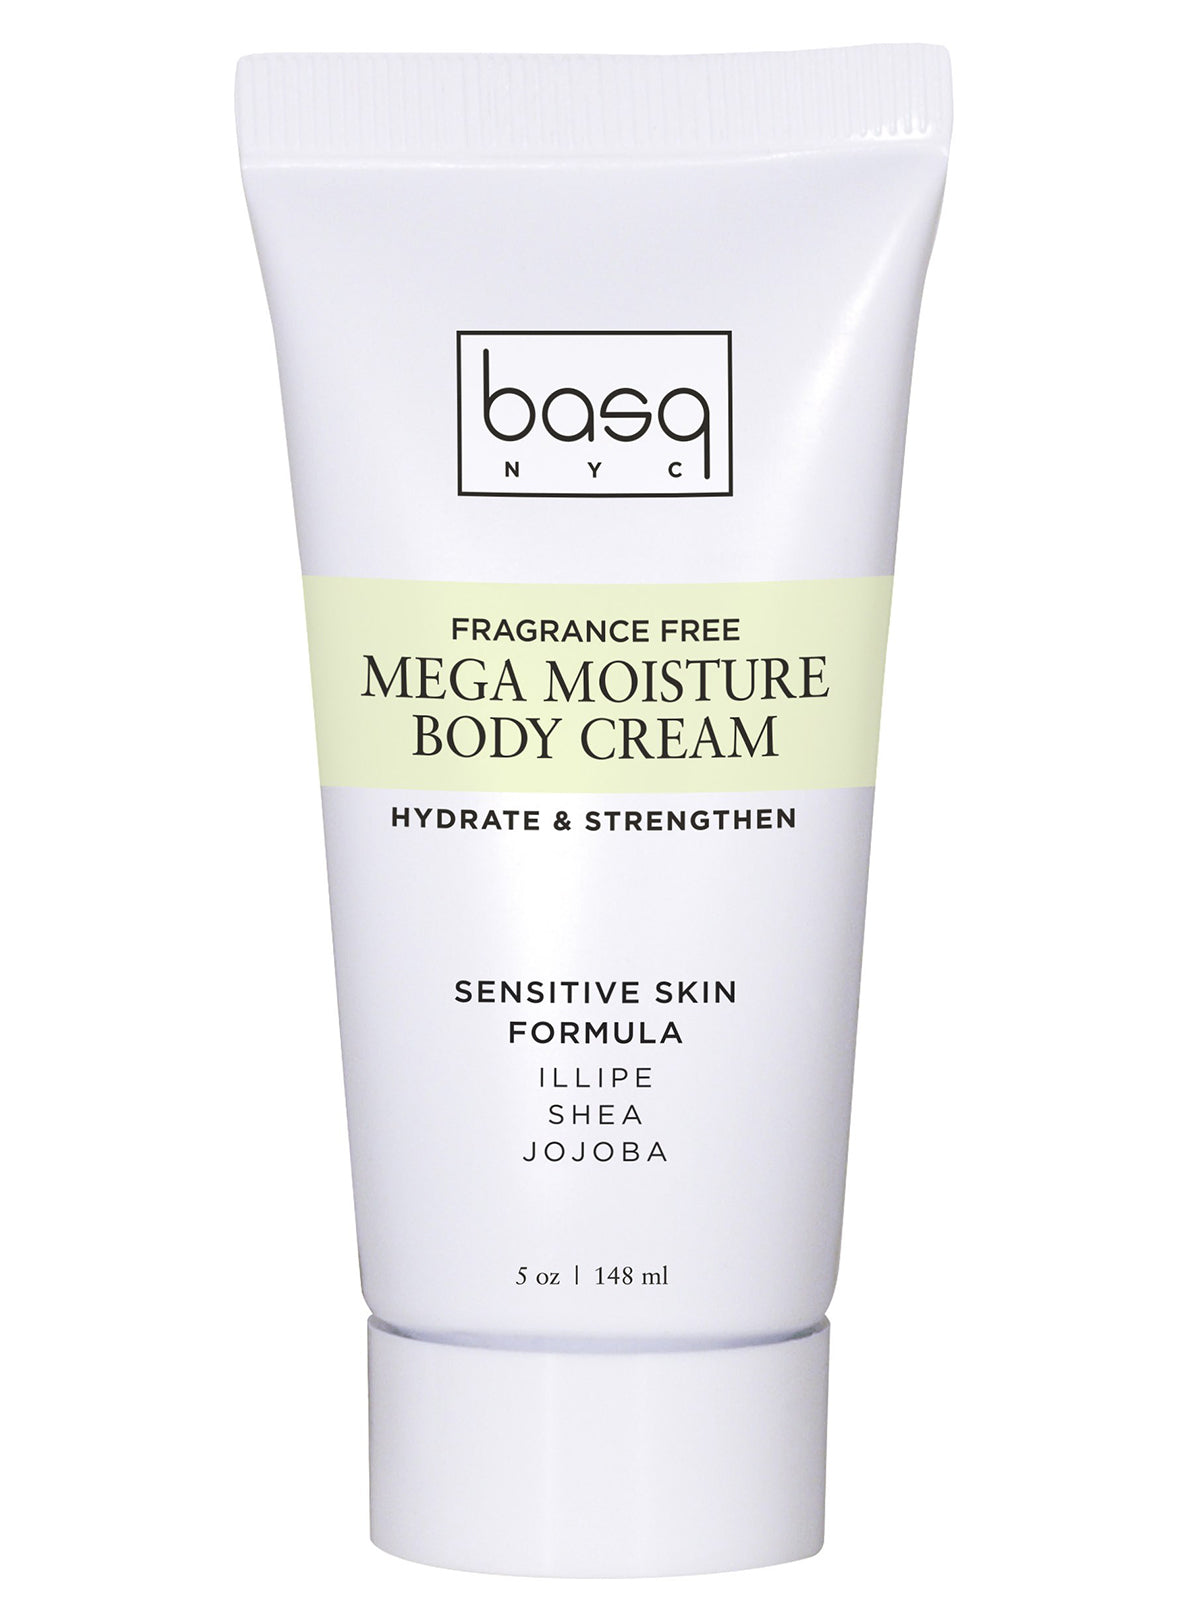 Basq Mega Moisture Multi-Purpose Stretch Mark and Breast Cream